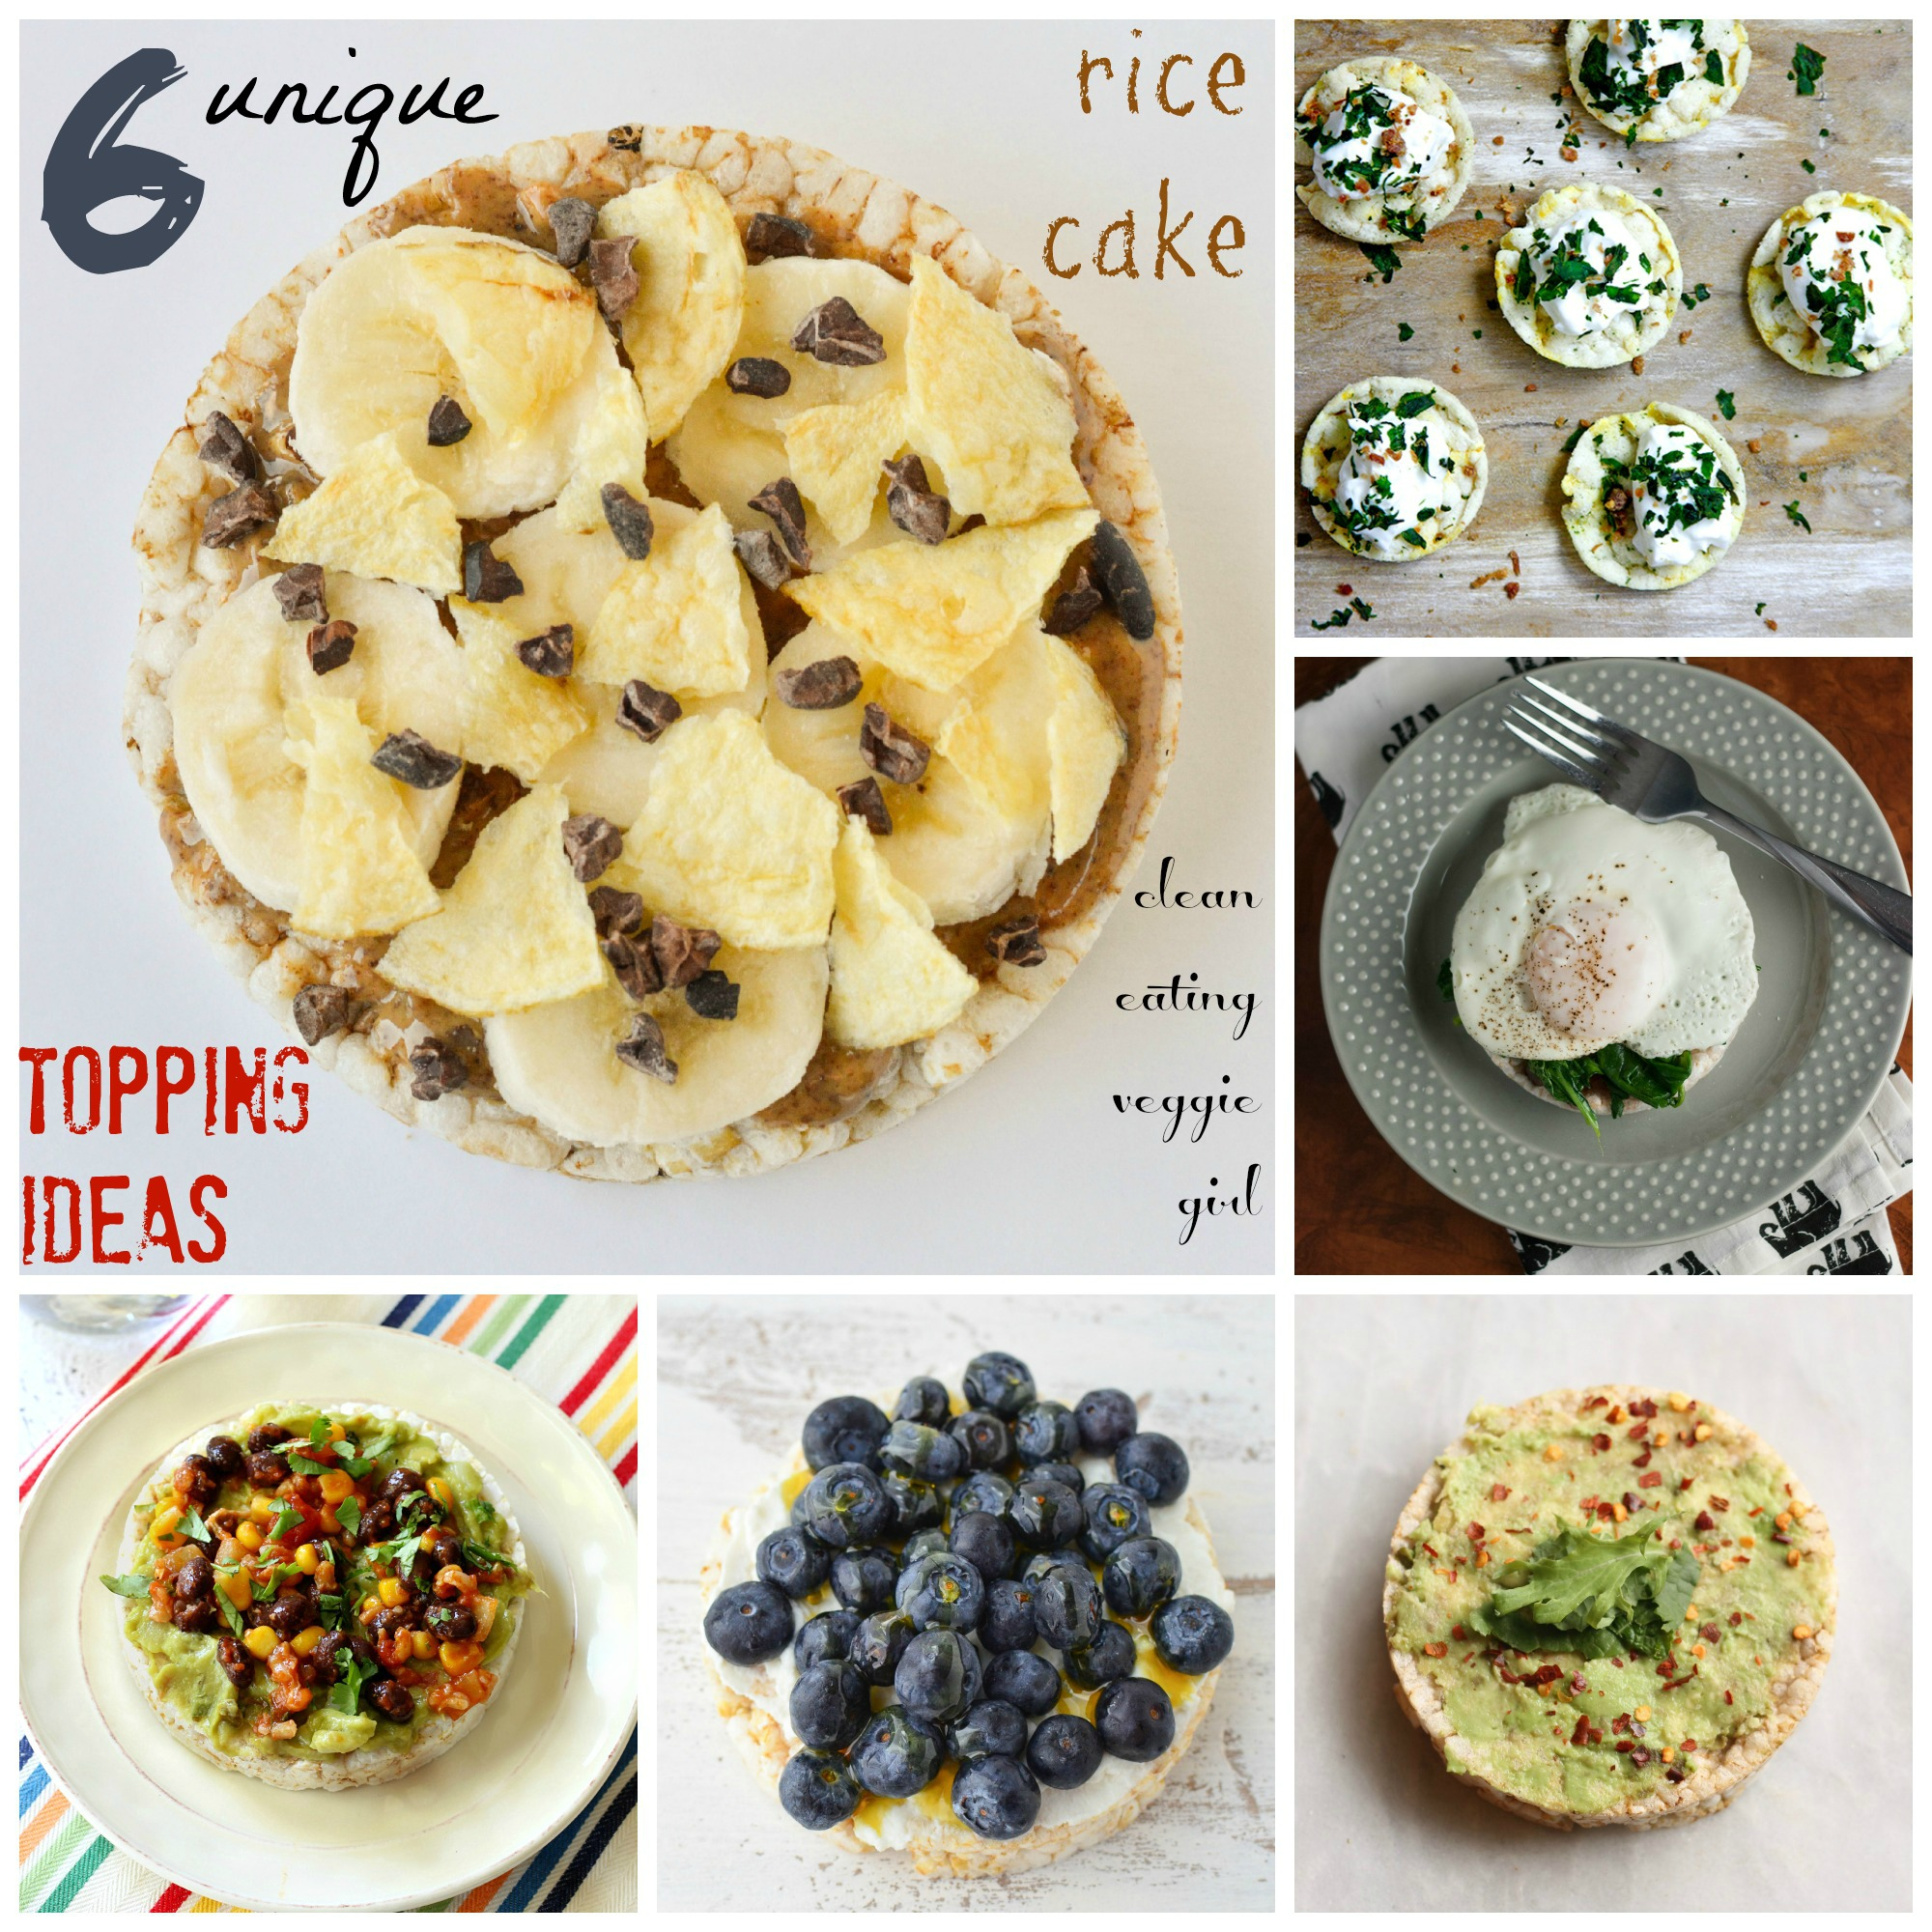 6 Unique Rice Cake Topping Ideas